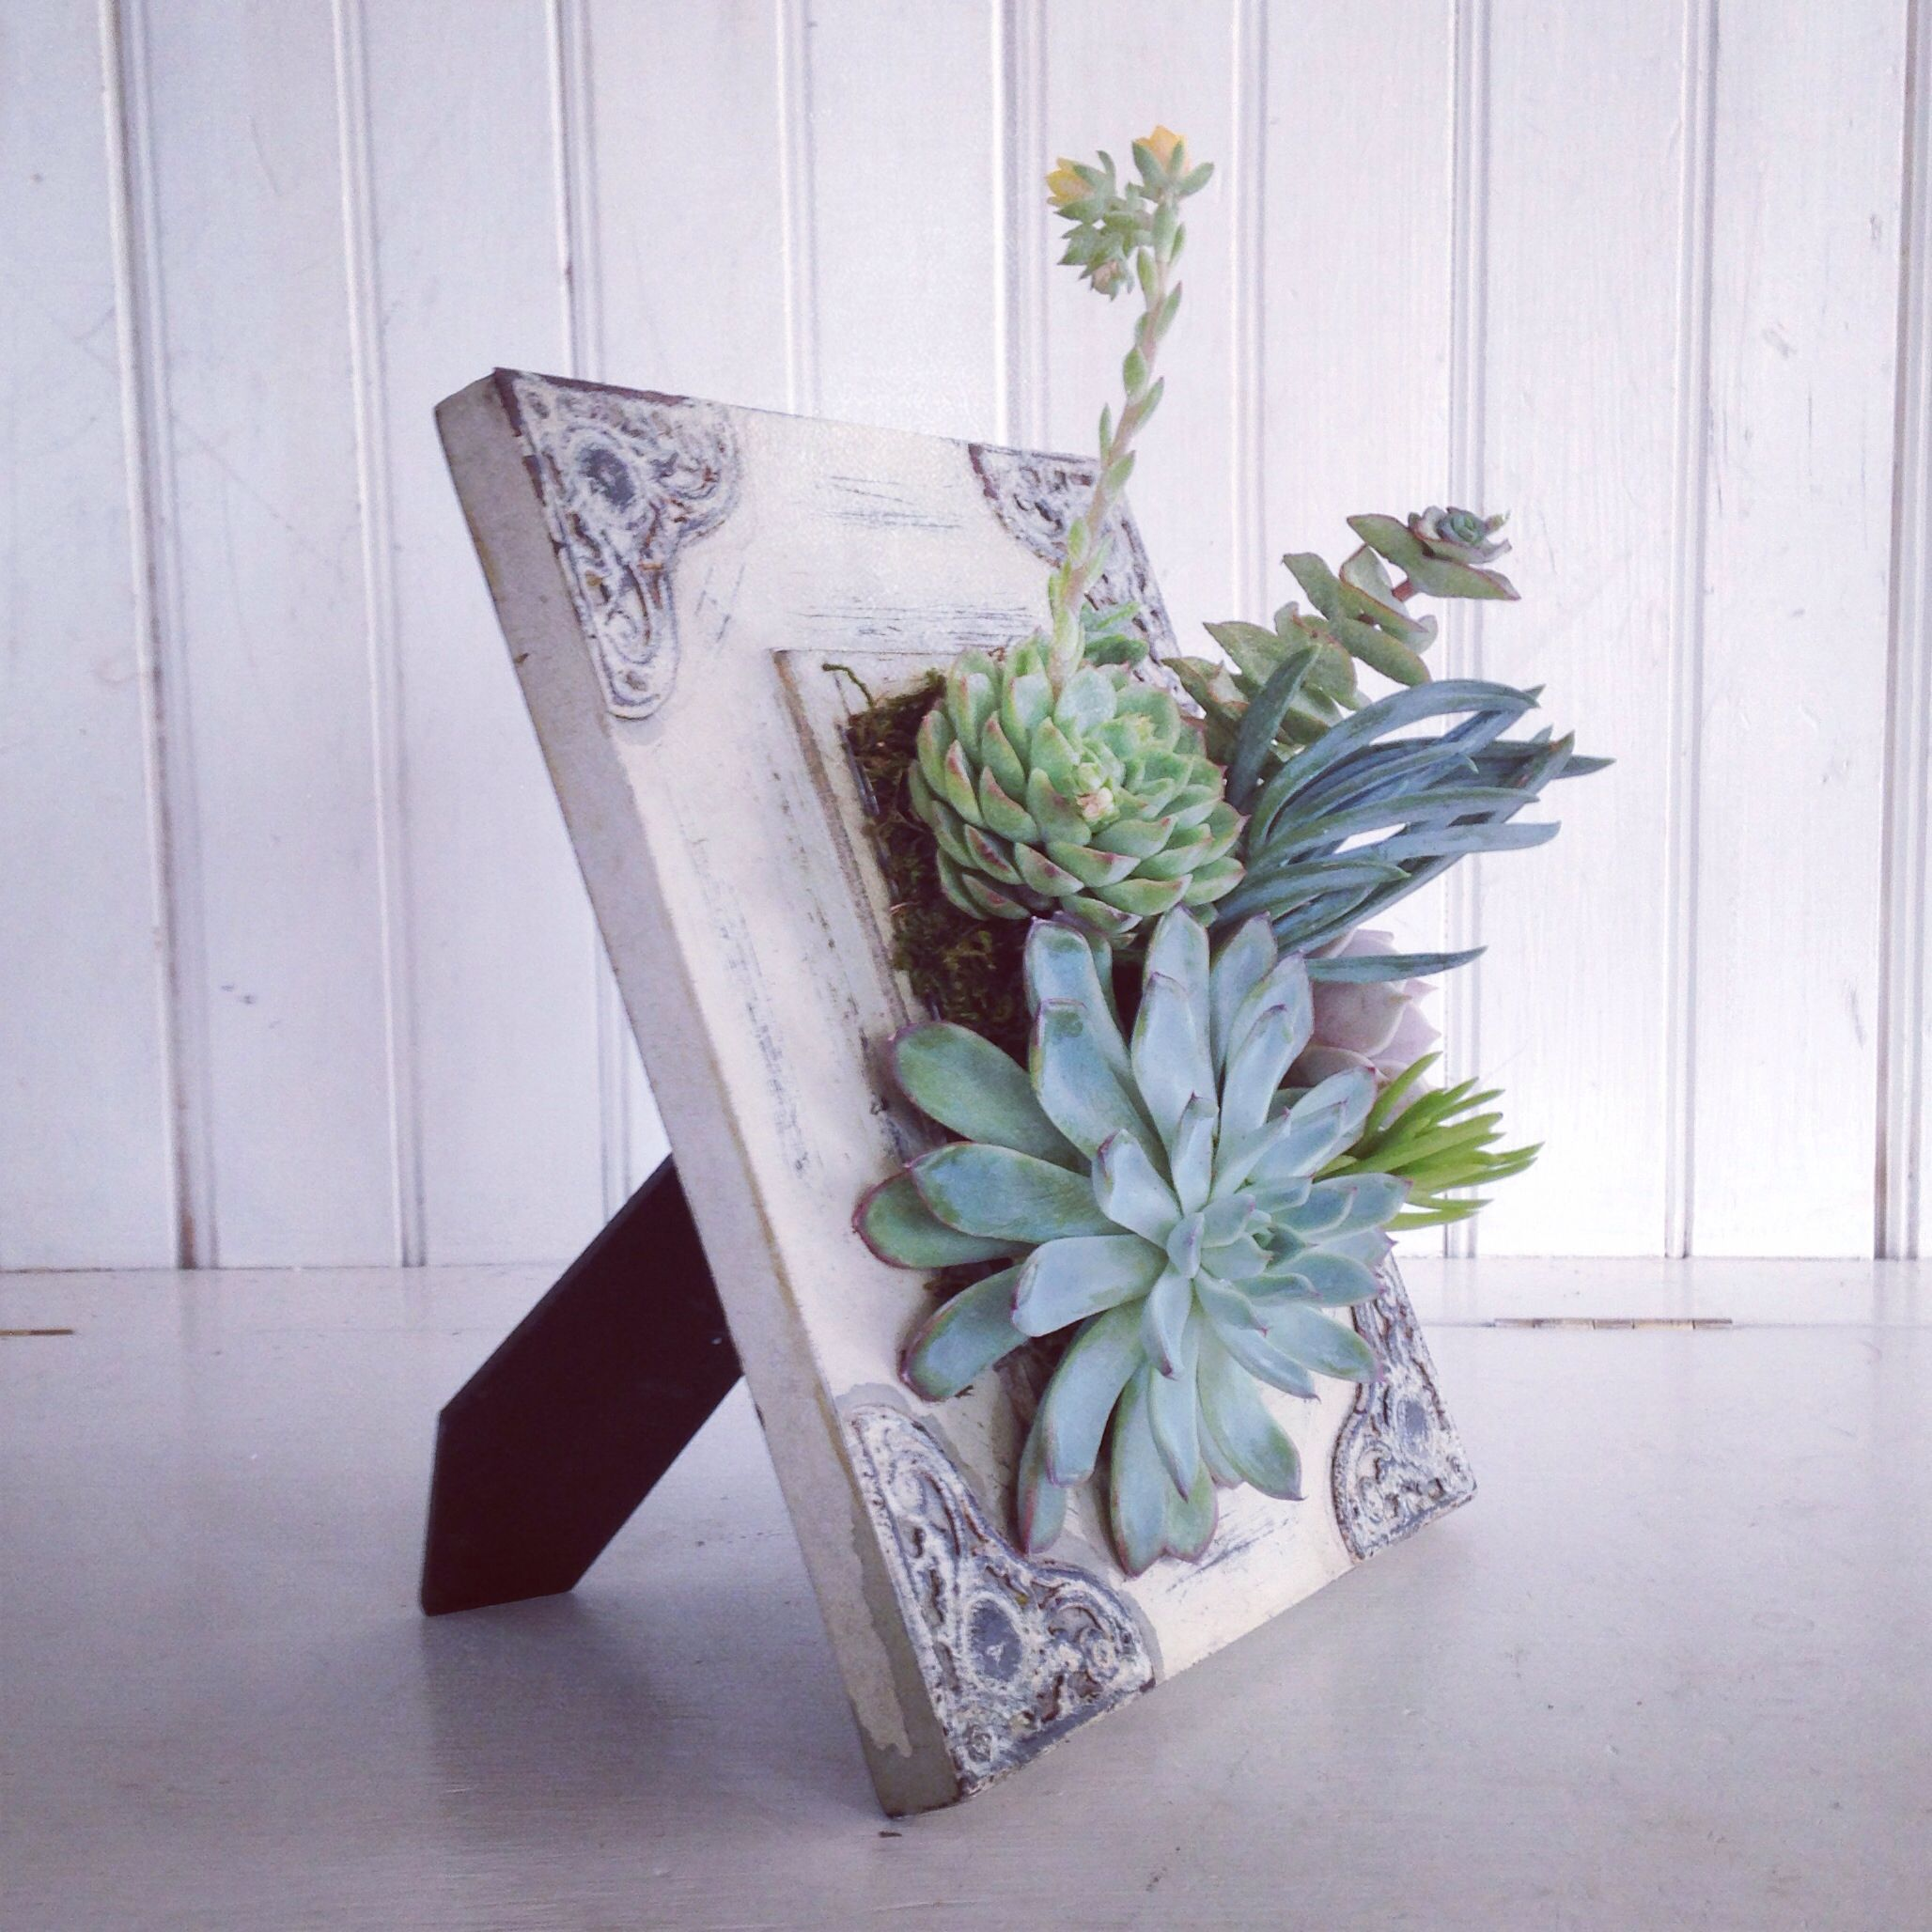 Fun way to bring succulents into your home decorating for Zimmerdekoration diy